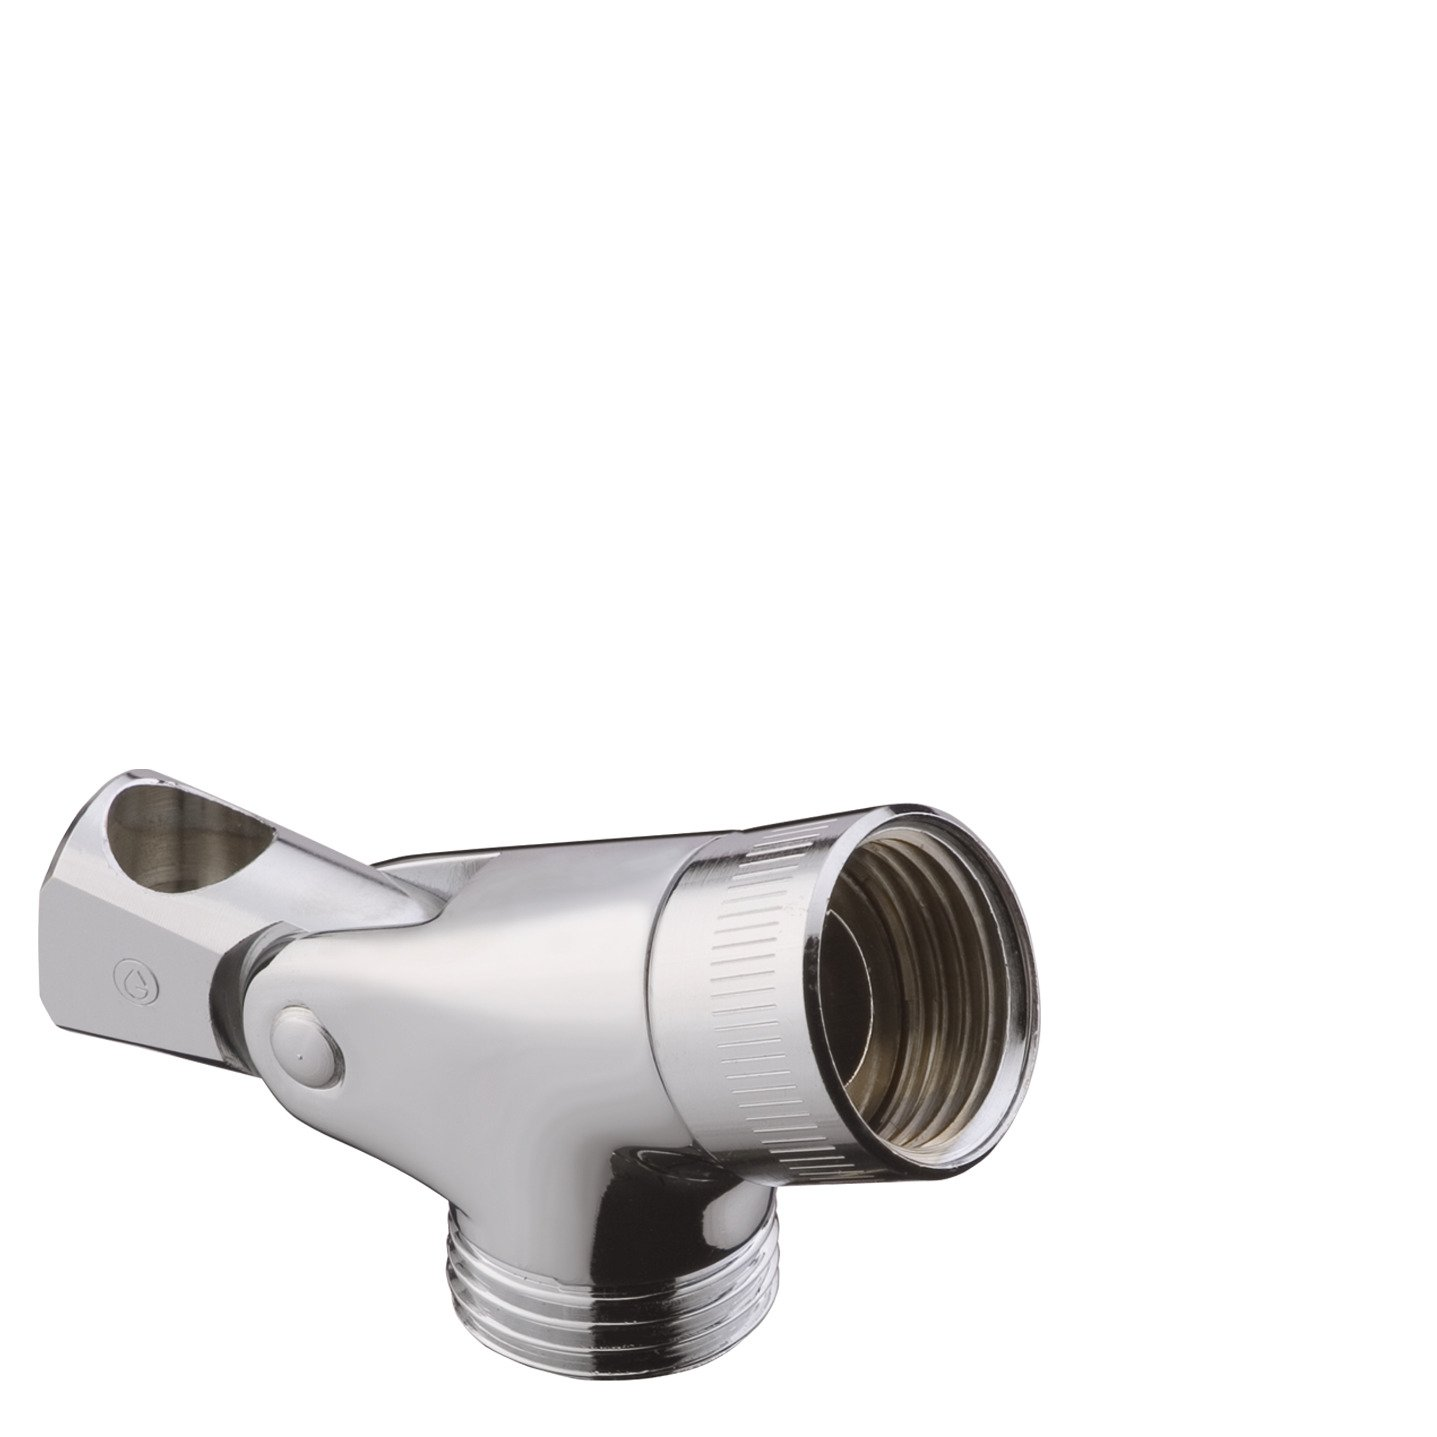 Hansgrohe 28650000 Unica Piè ce d'articulation Chrome Hansgrohe^hansgrohe